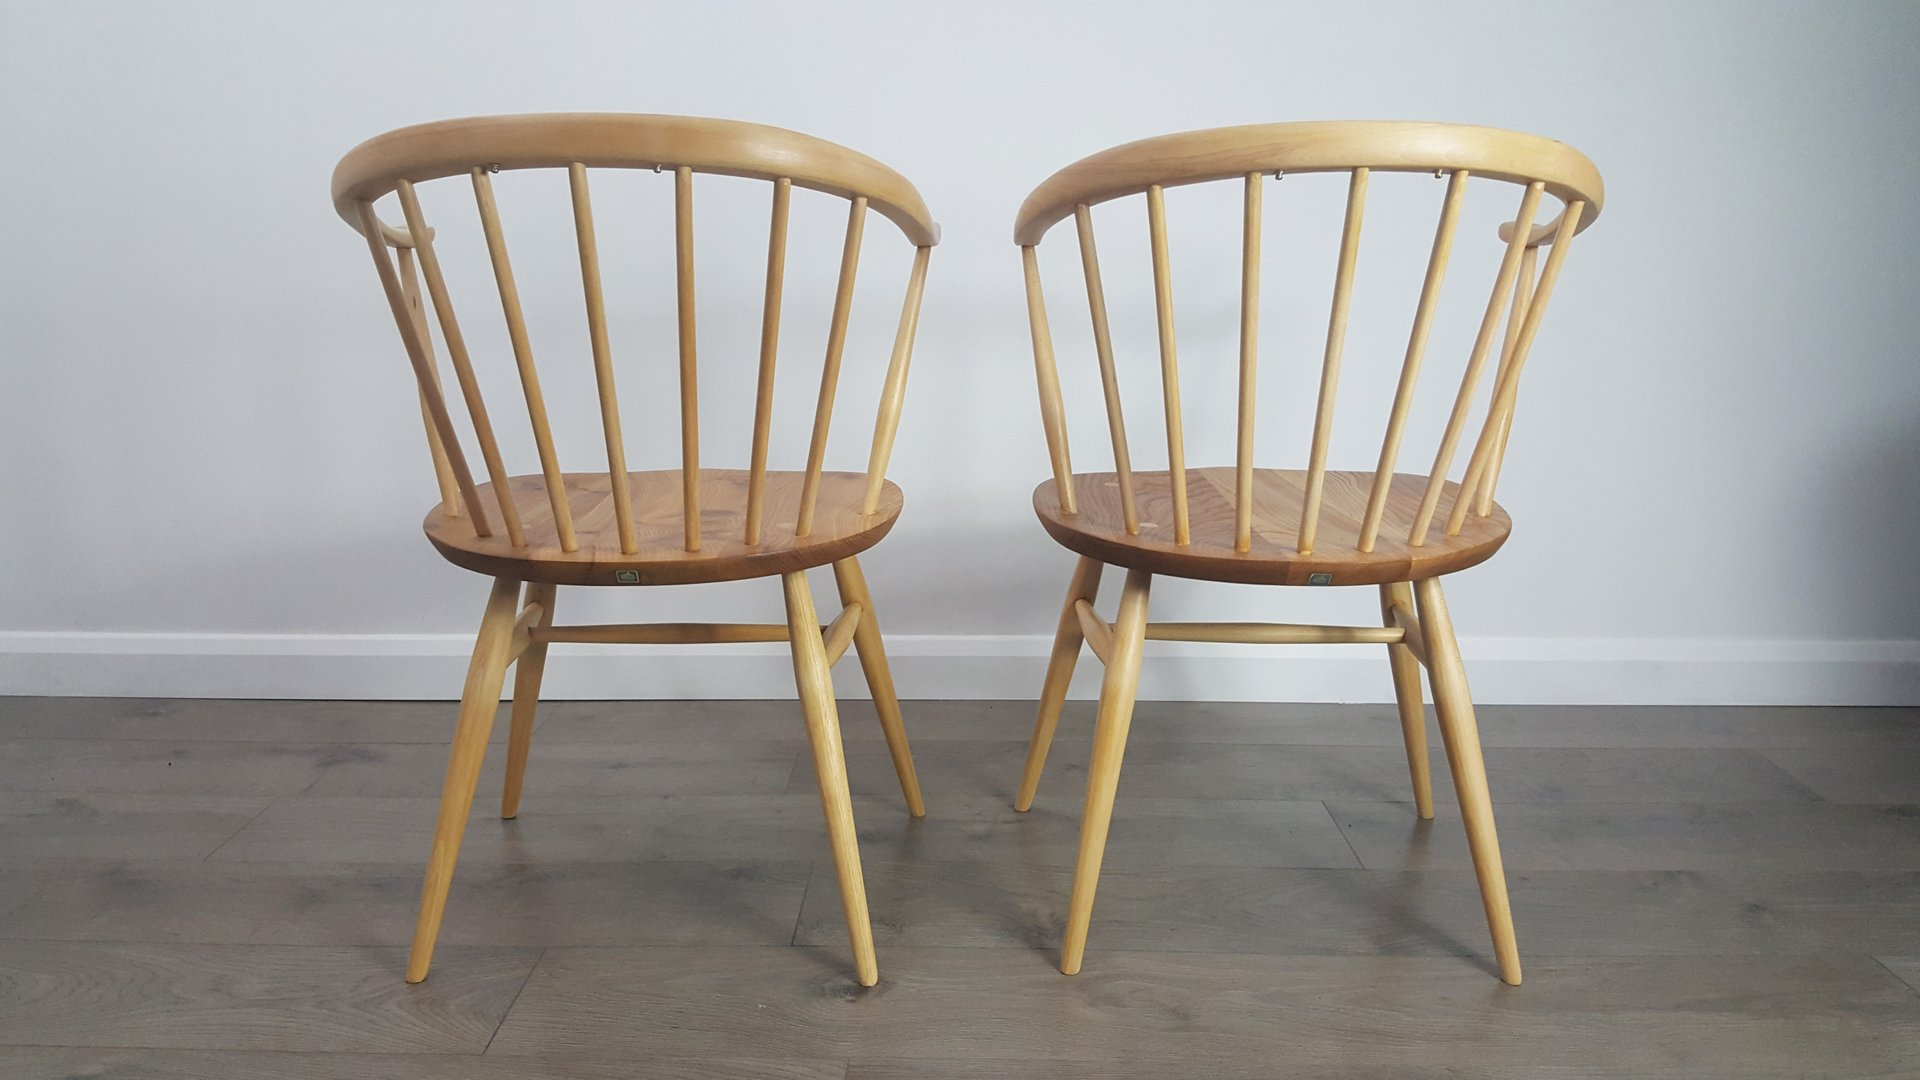 Vintage Windsor Bow Top Armchair By Lucian Ercolani For Ercol For Sale At Pamono